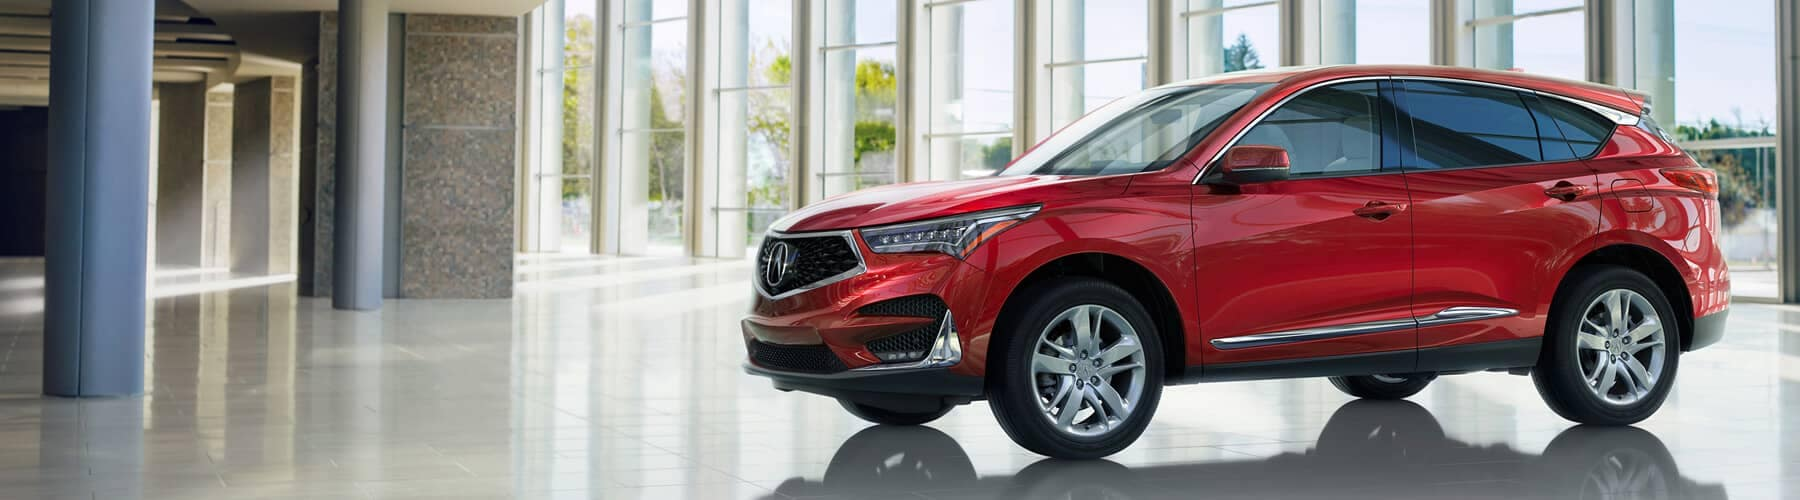 Ann Arbor Acura >> Fox Ann Arbor Acura Ann Arbor Mi New Acura And Used Car Dealer